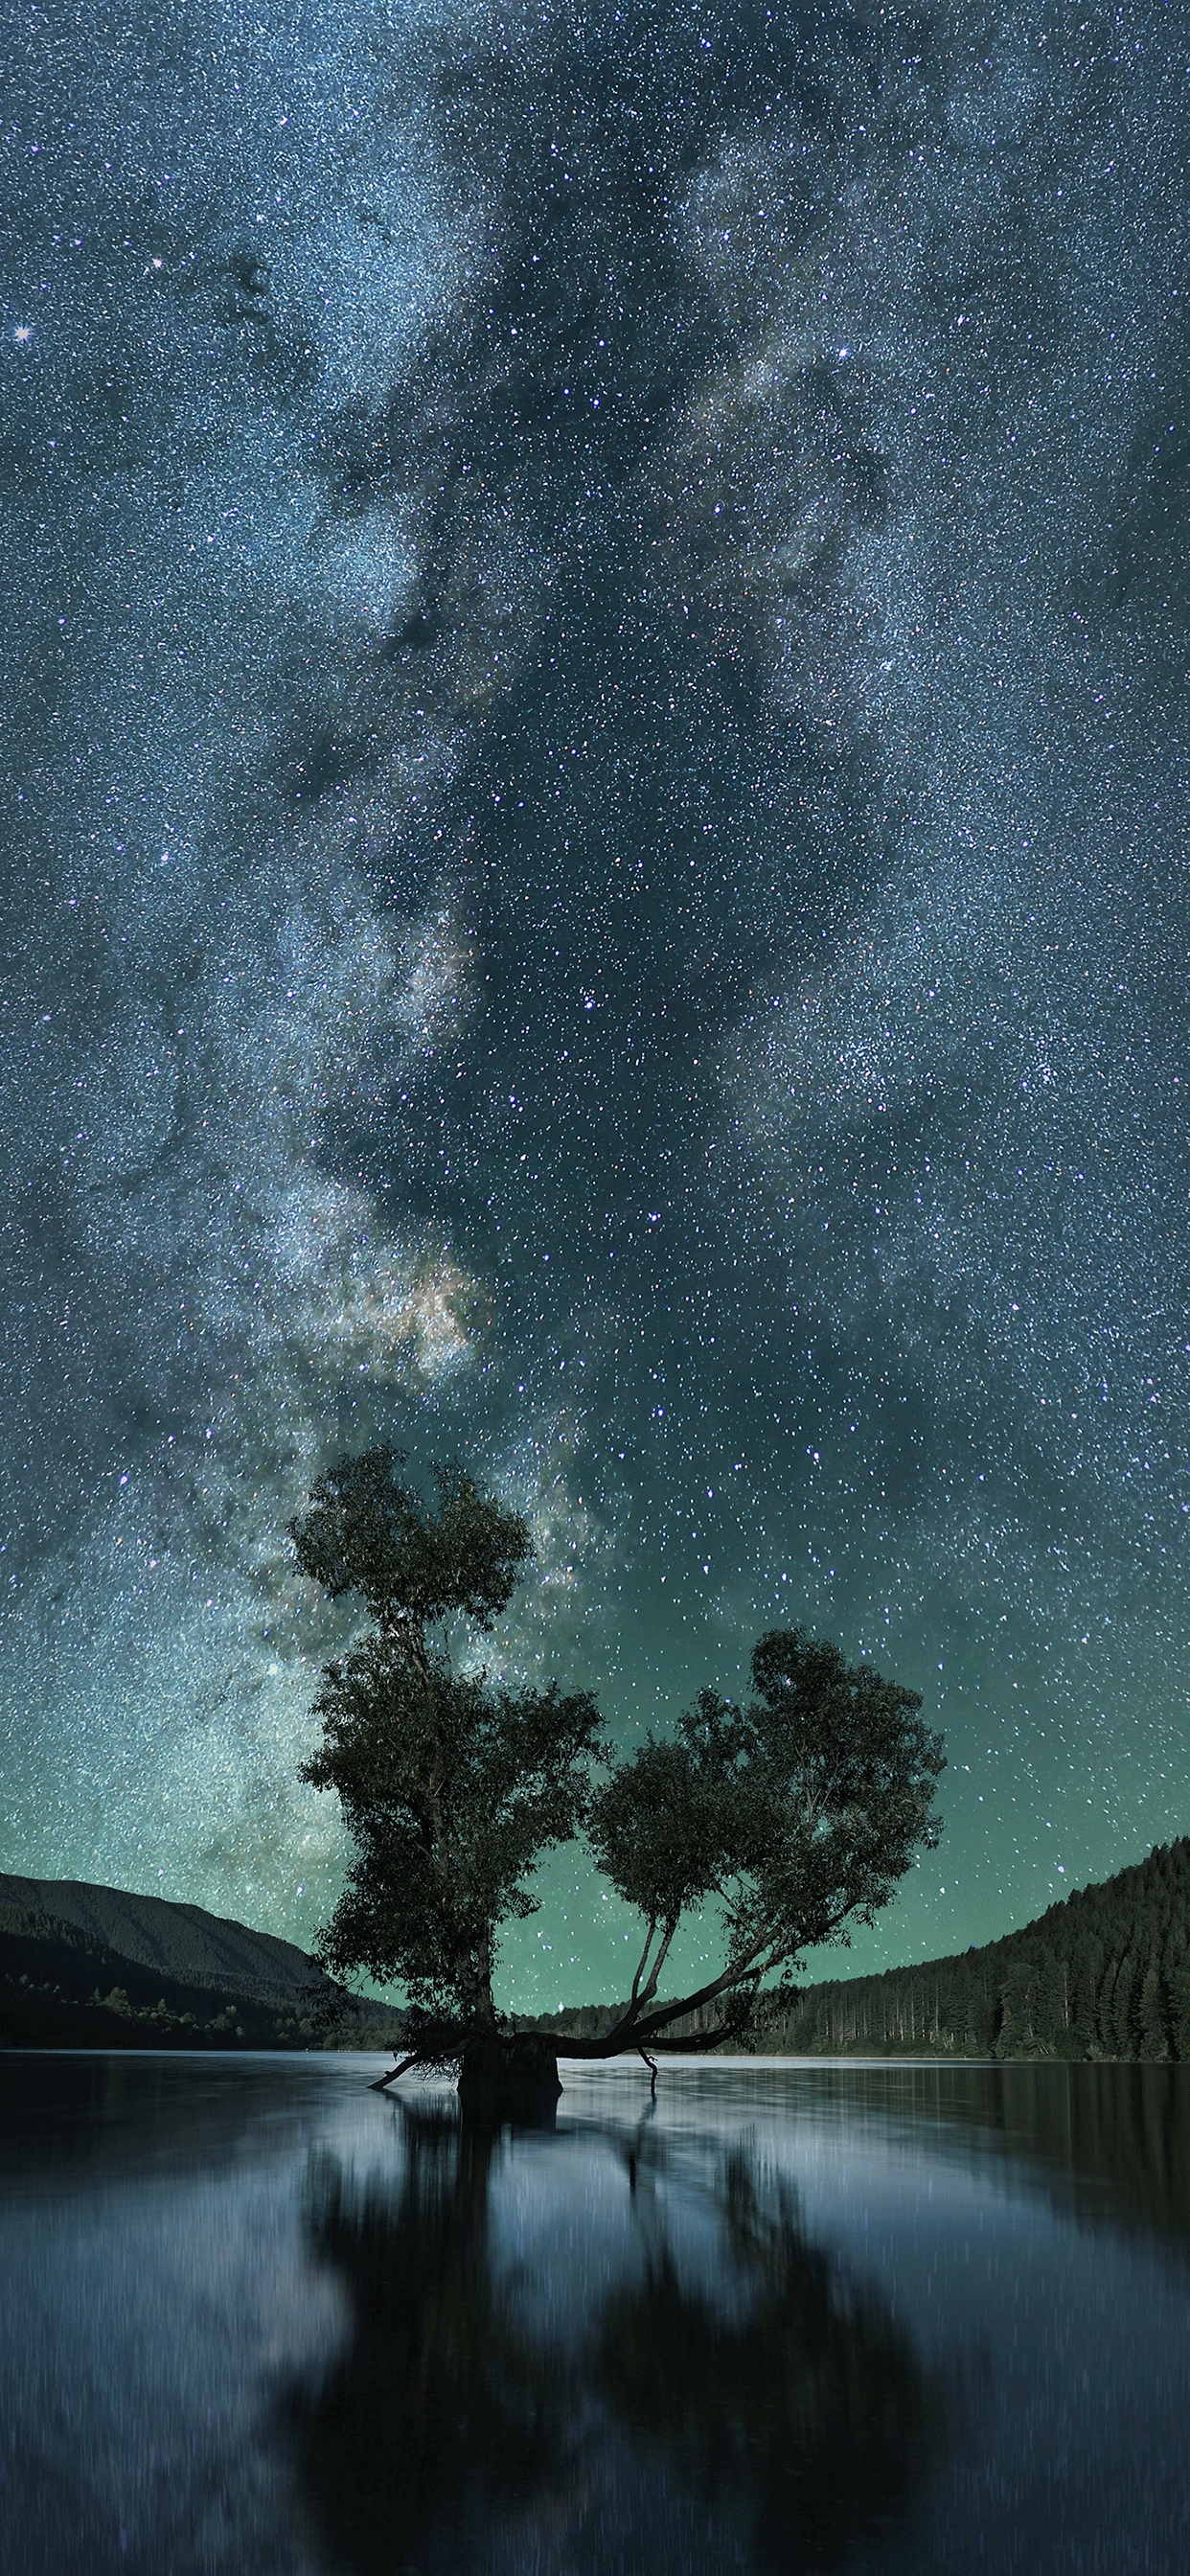 iPhone wallpaper stars rattlesnake lake Stars